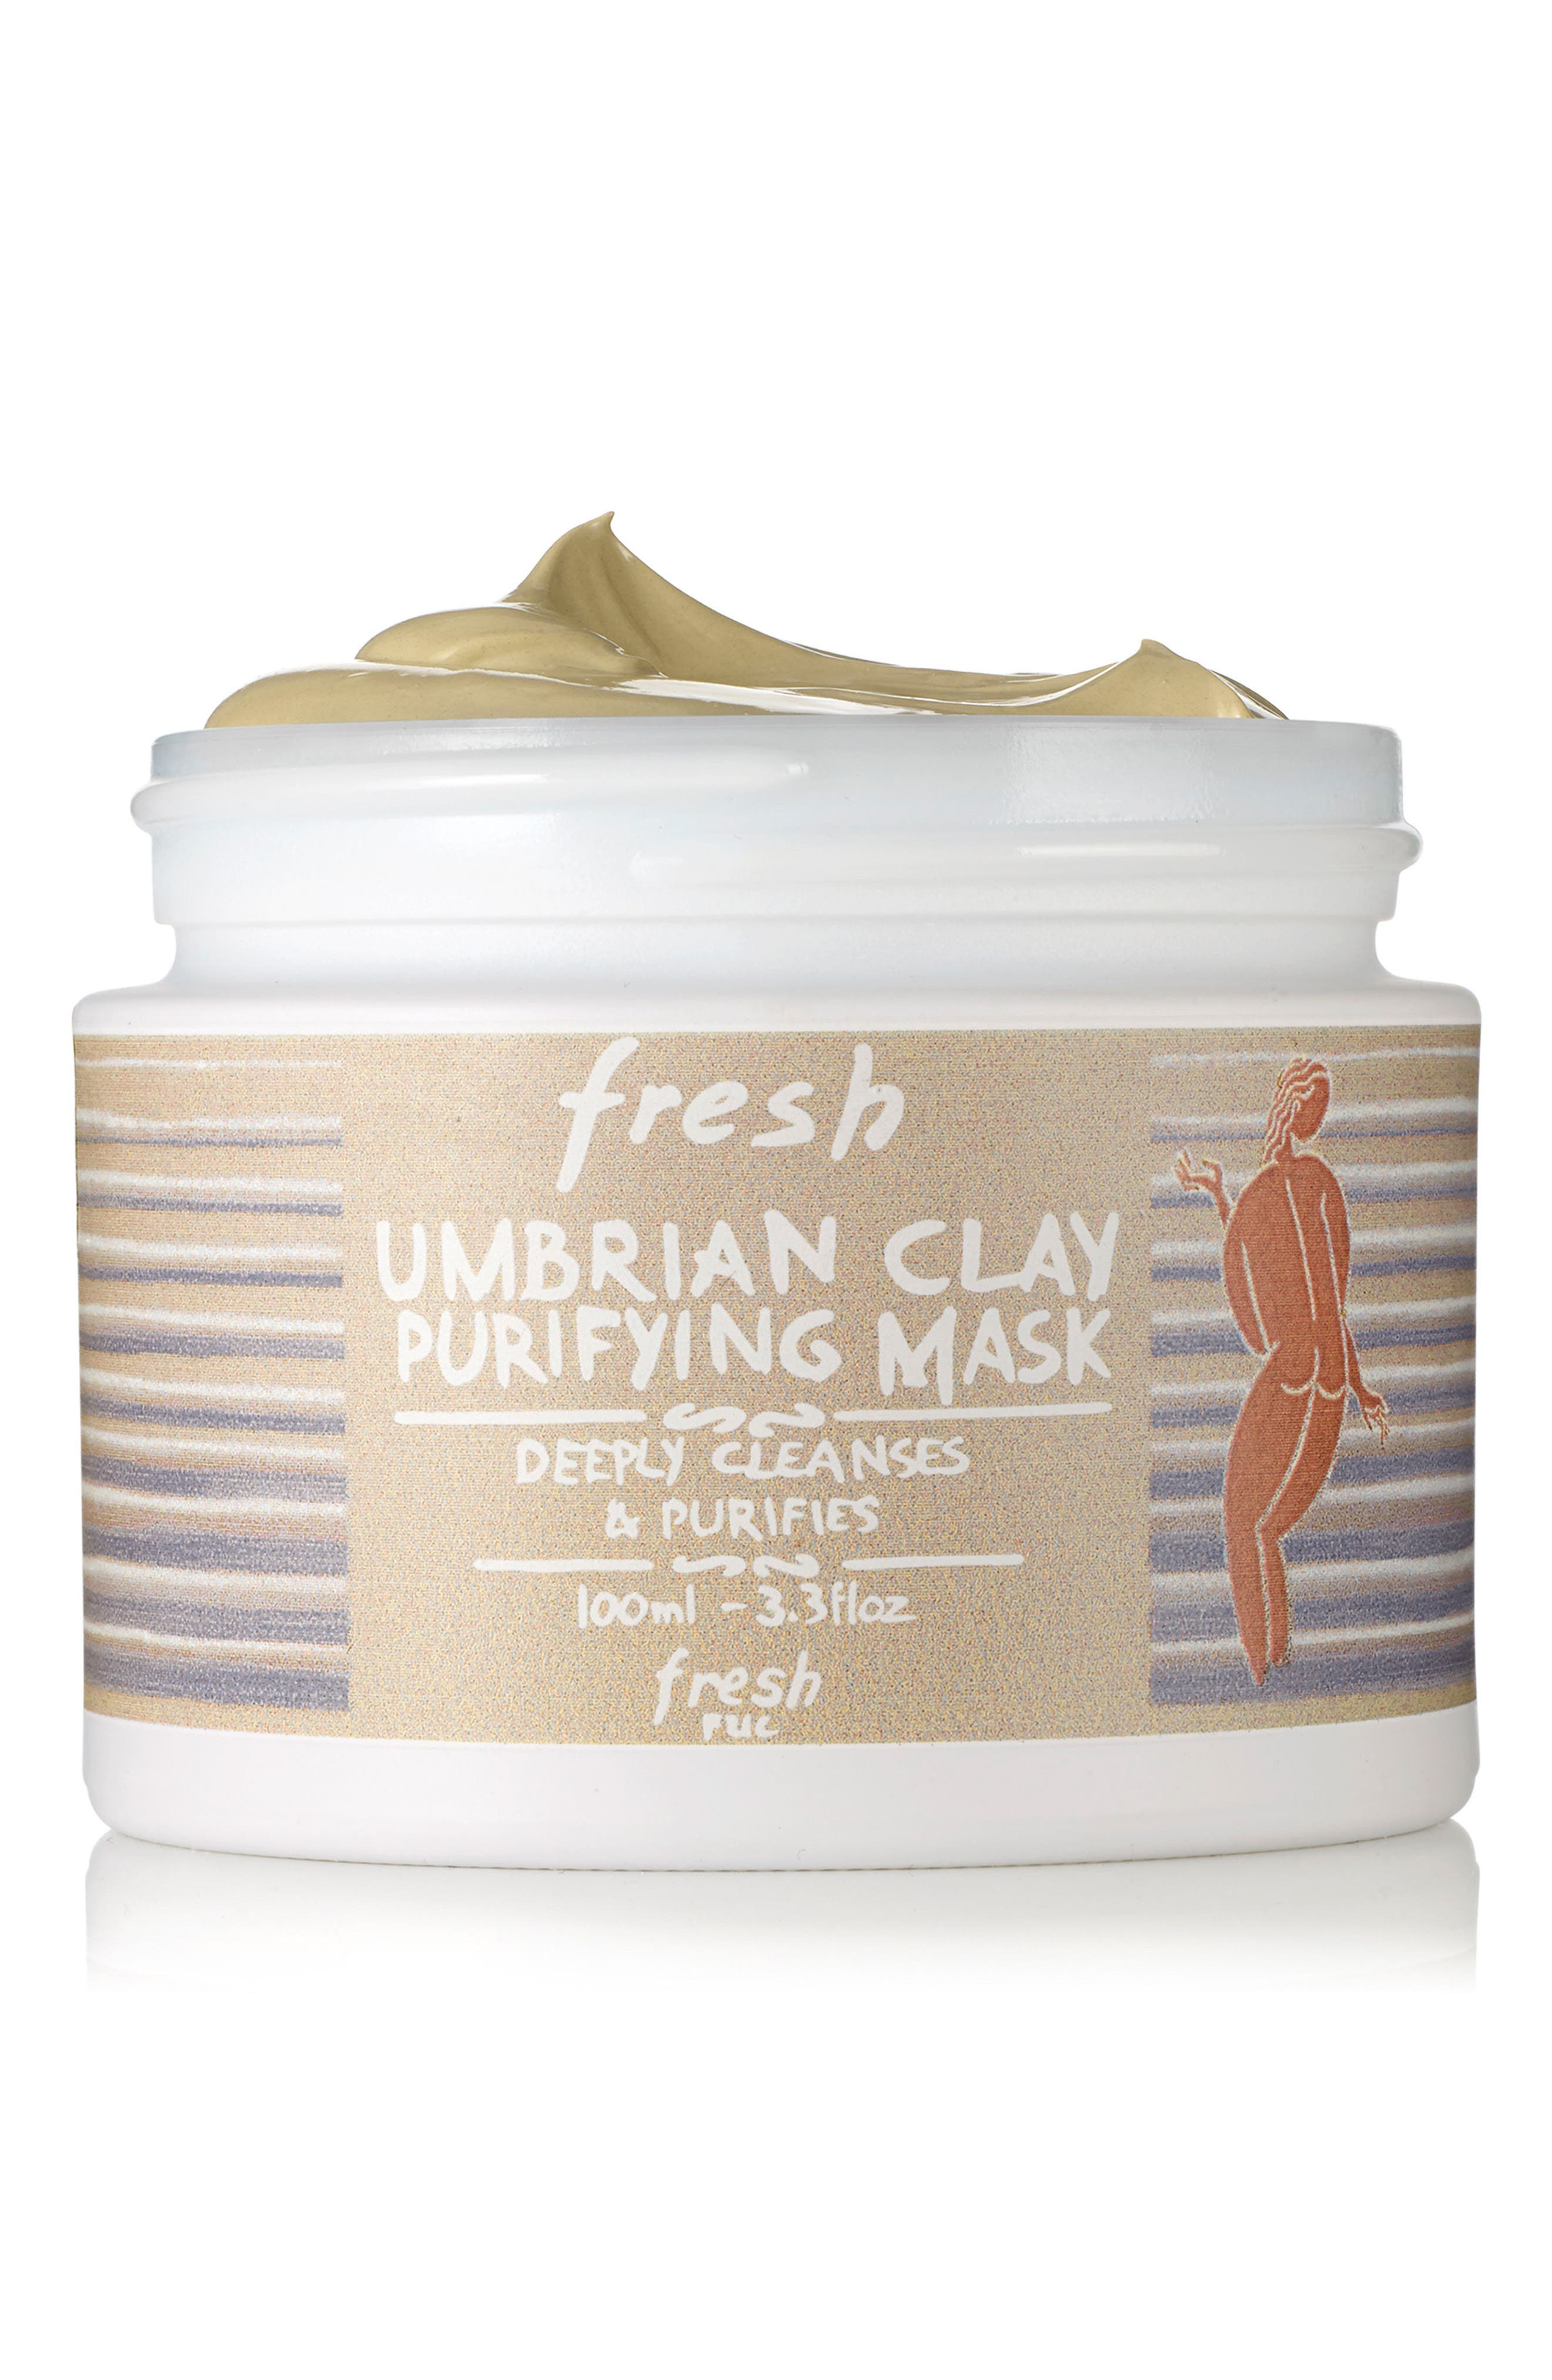 Umbrian Clay Purifying Mask,                         Main,                         color, No Color